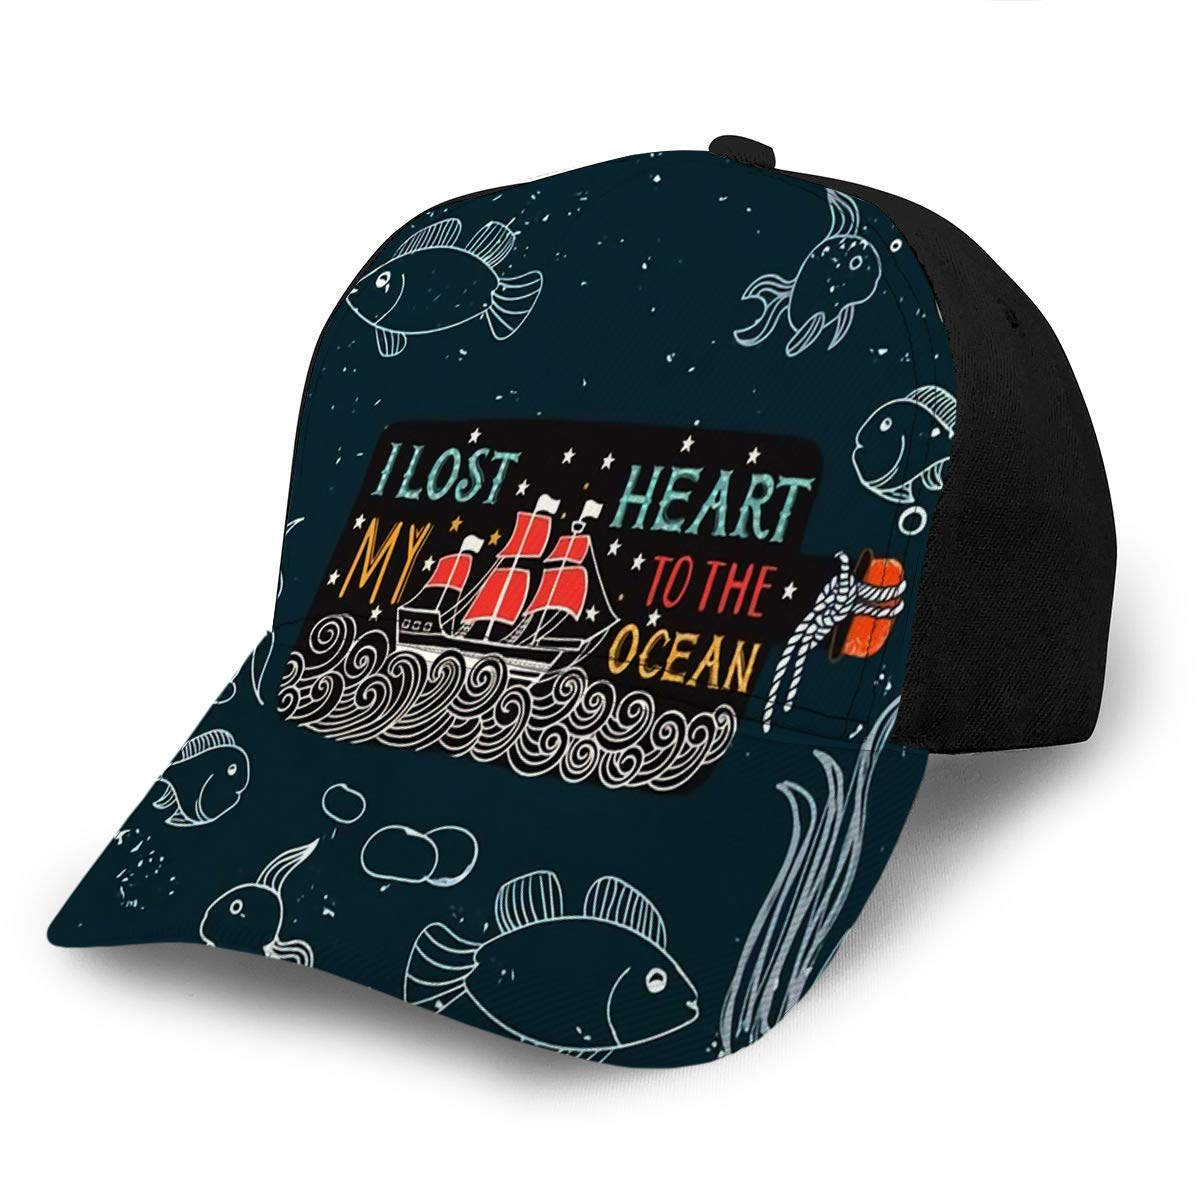 Unisex Adjustable Sport Cap Vintage Label with Ship in Bottle and Lettering This